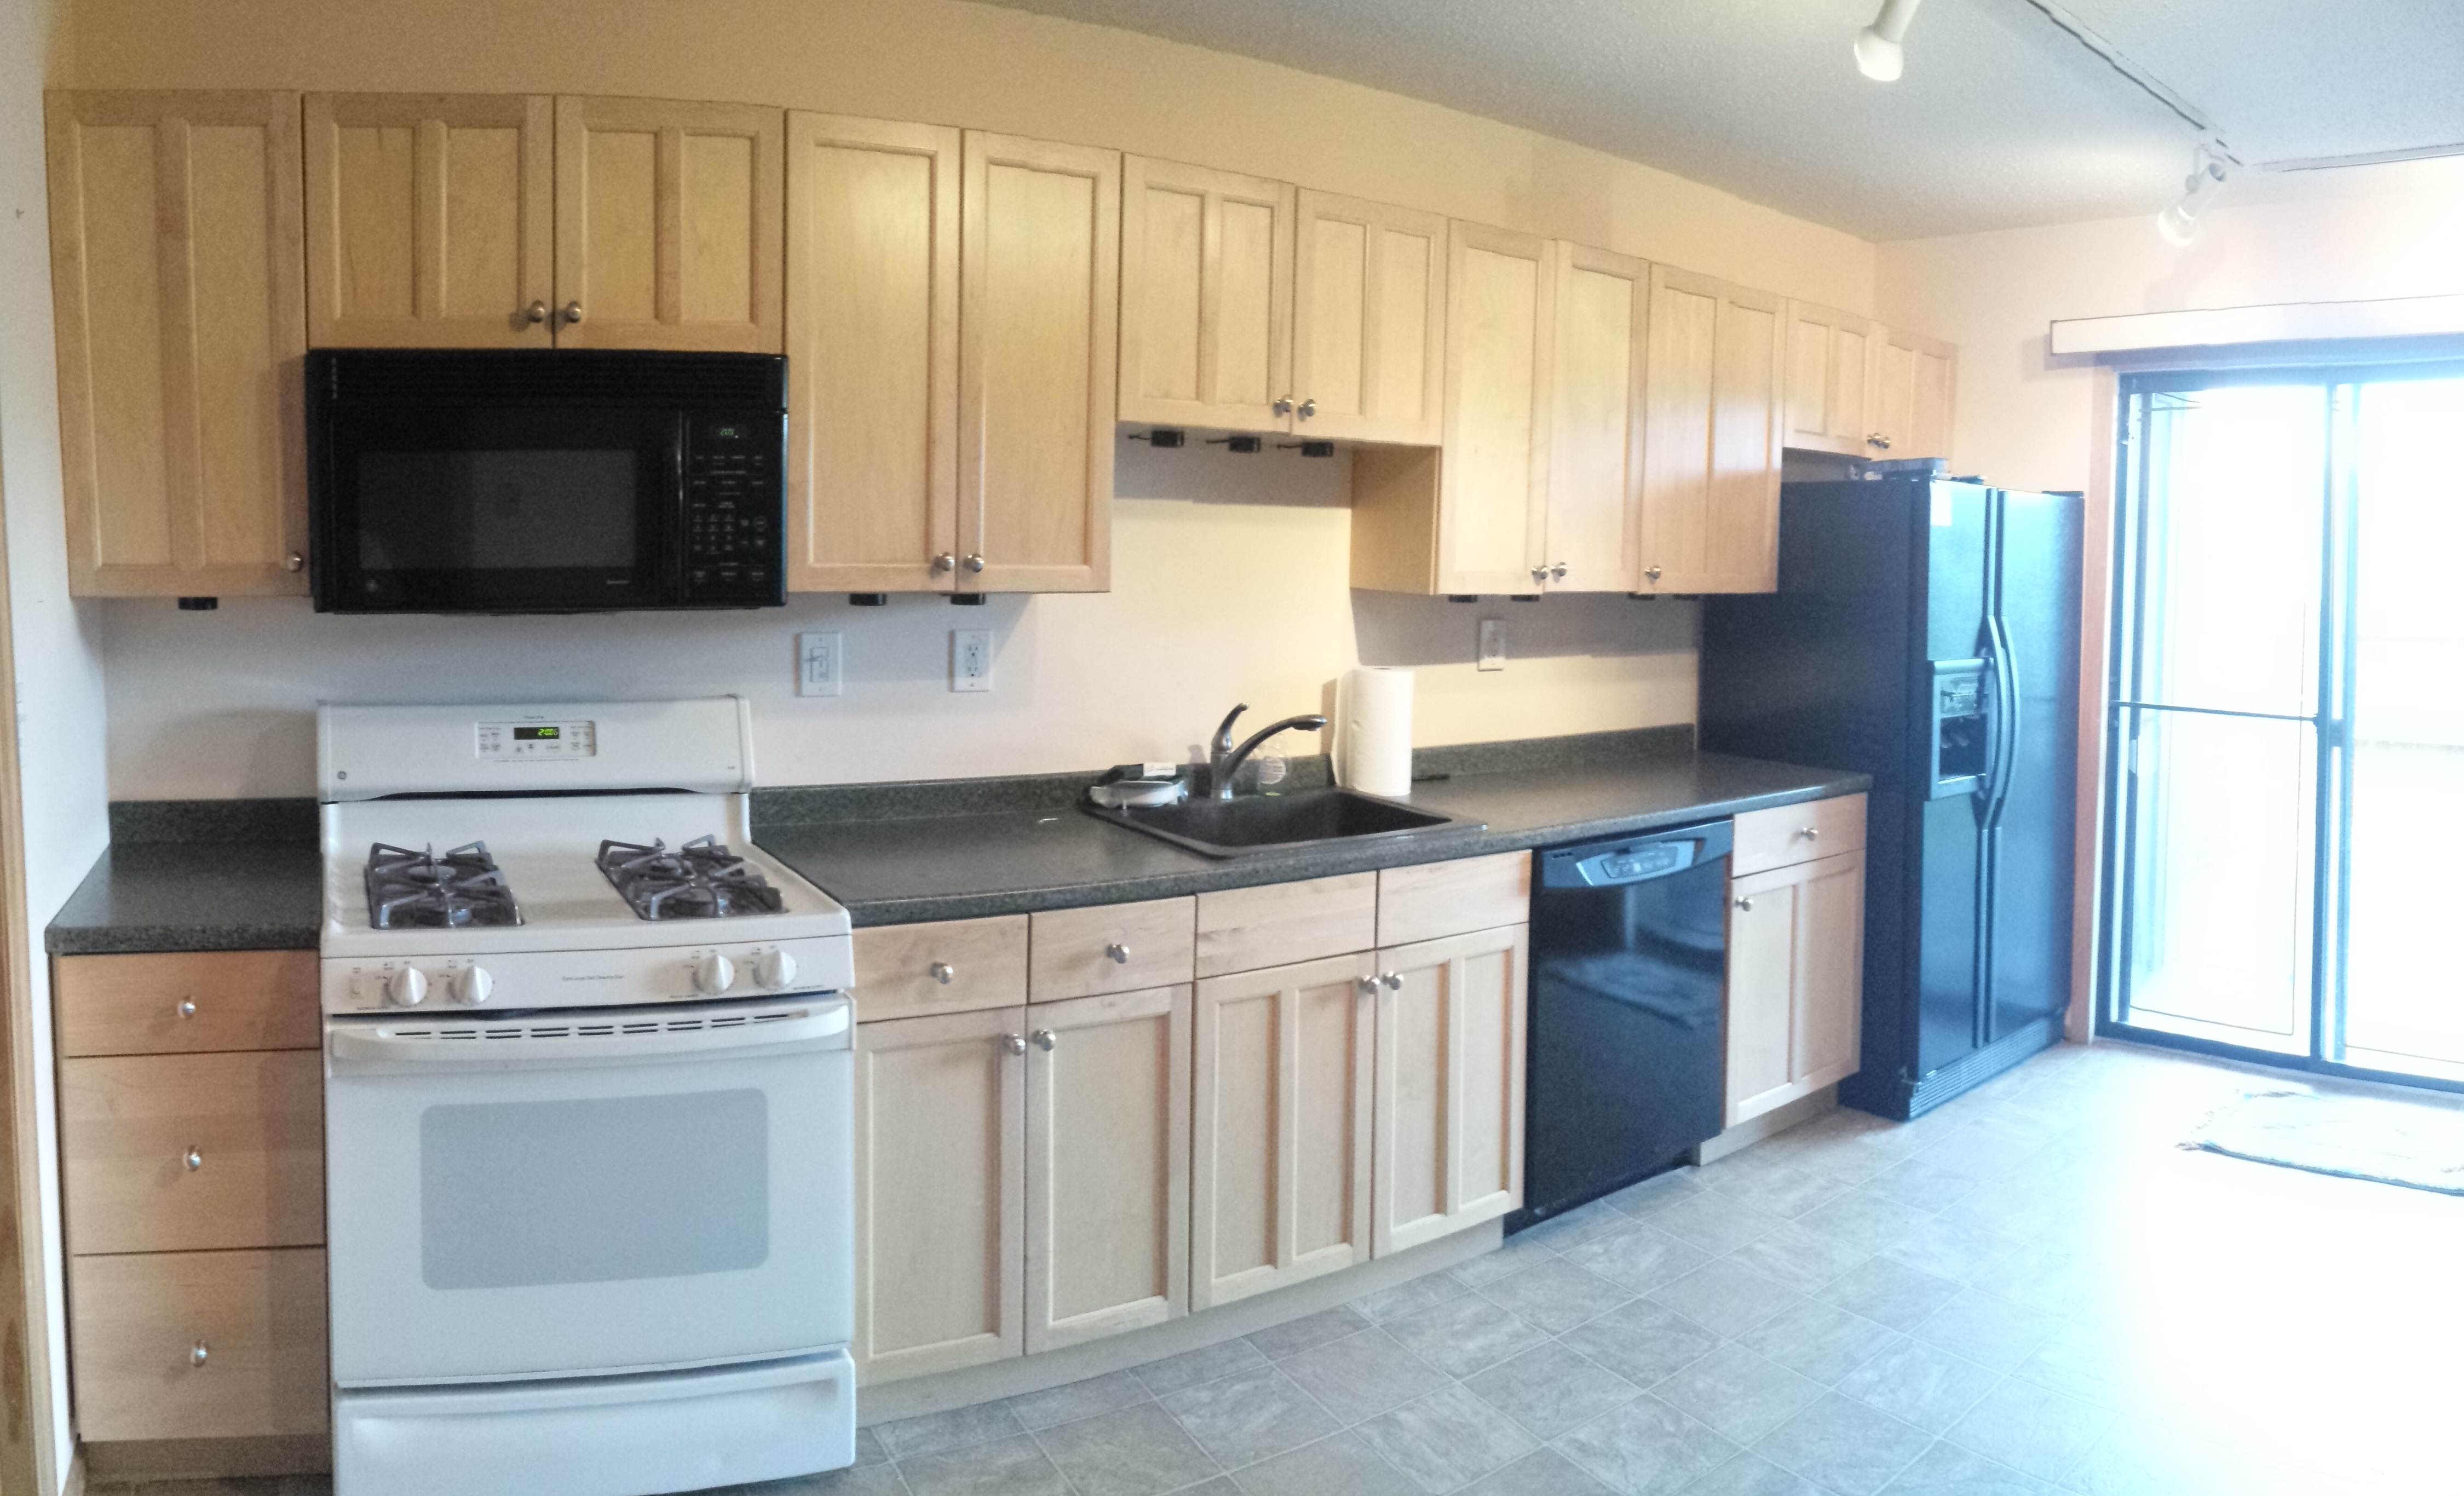 Kitchen Cabinets Edison Nj Amazing Value On This Westgate Square Townhome In Edison Nj